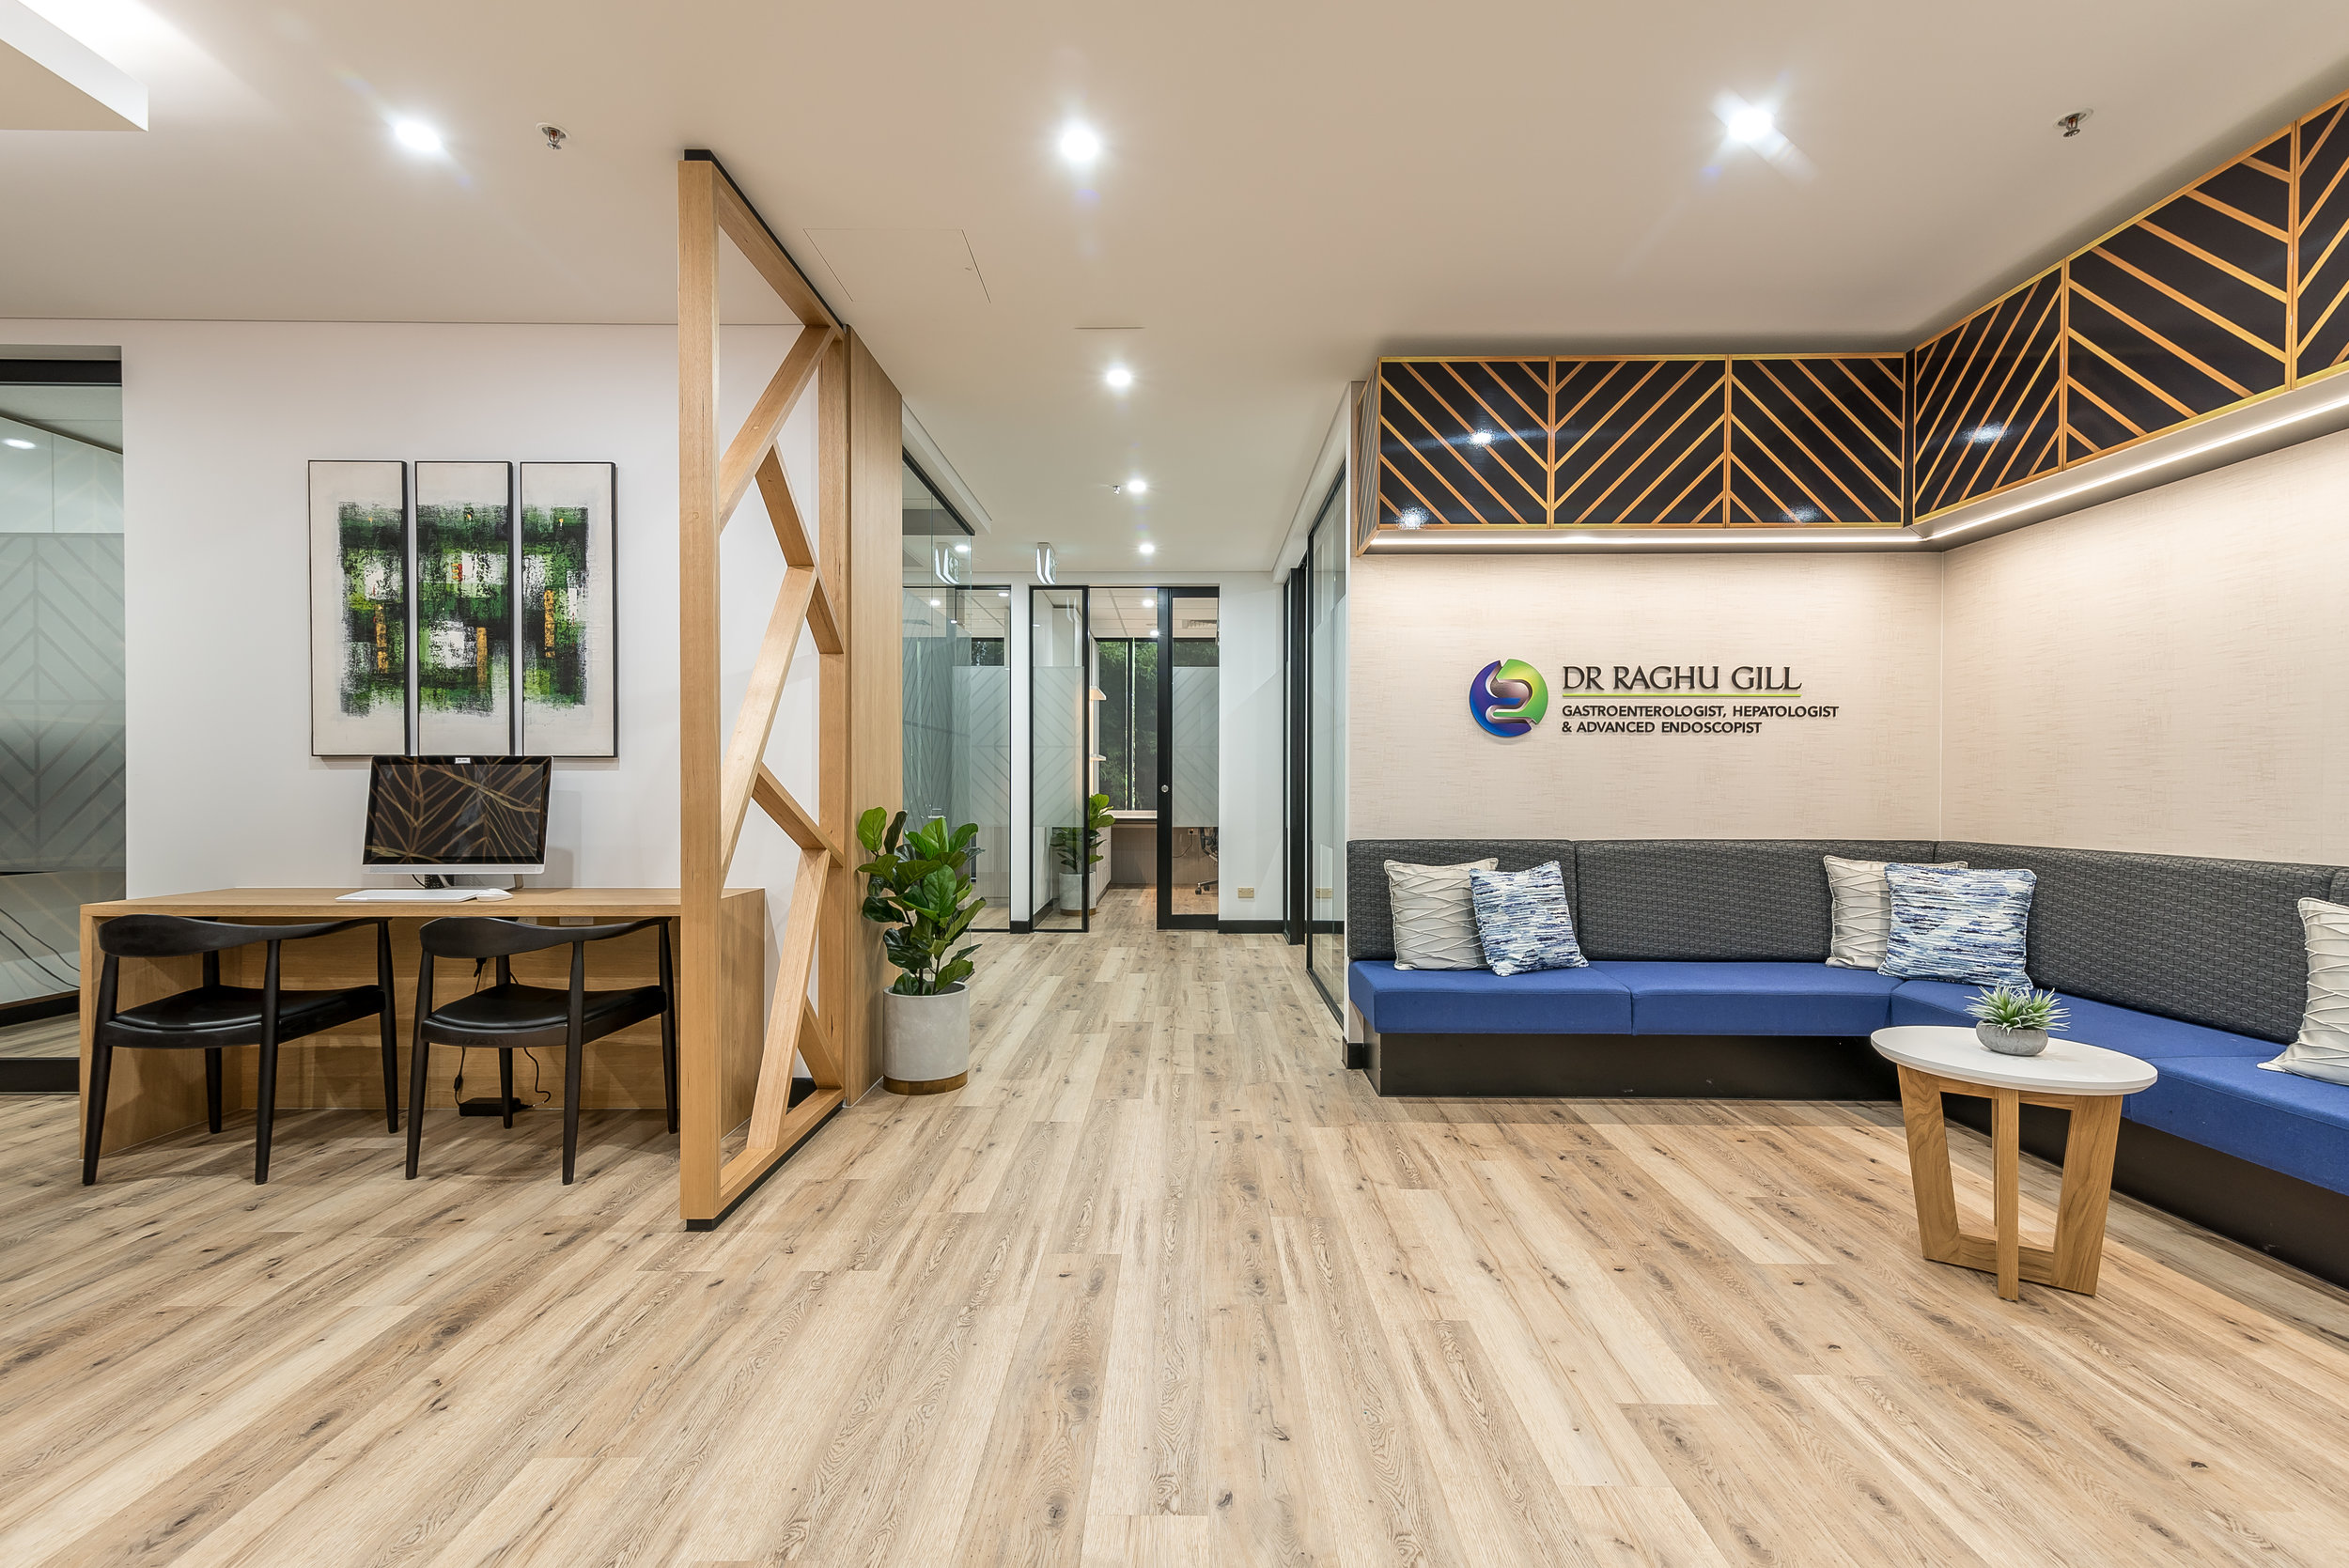 Commodore Dental and Medical Fitout - Sydney-15.jpg